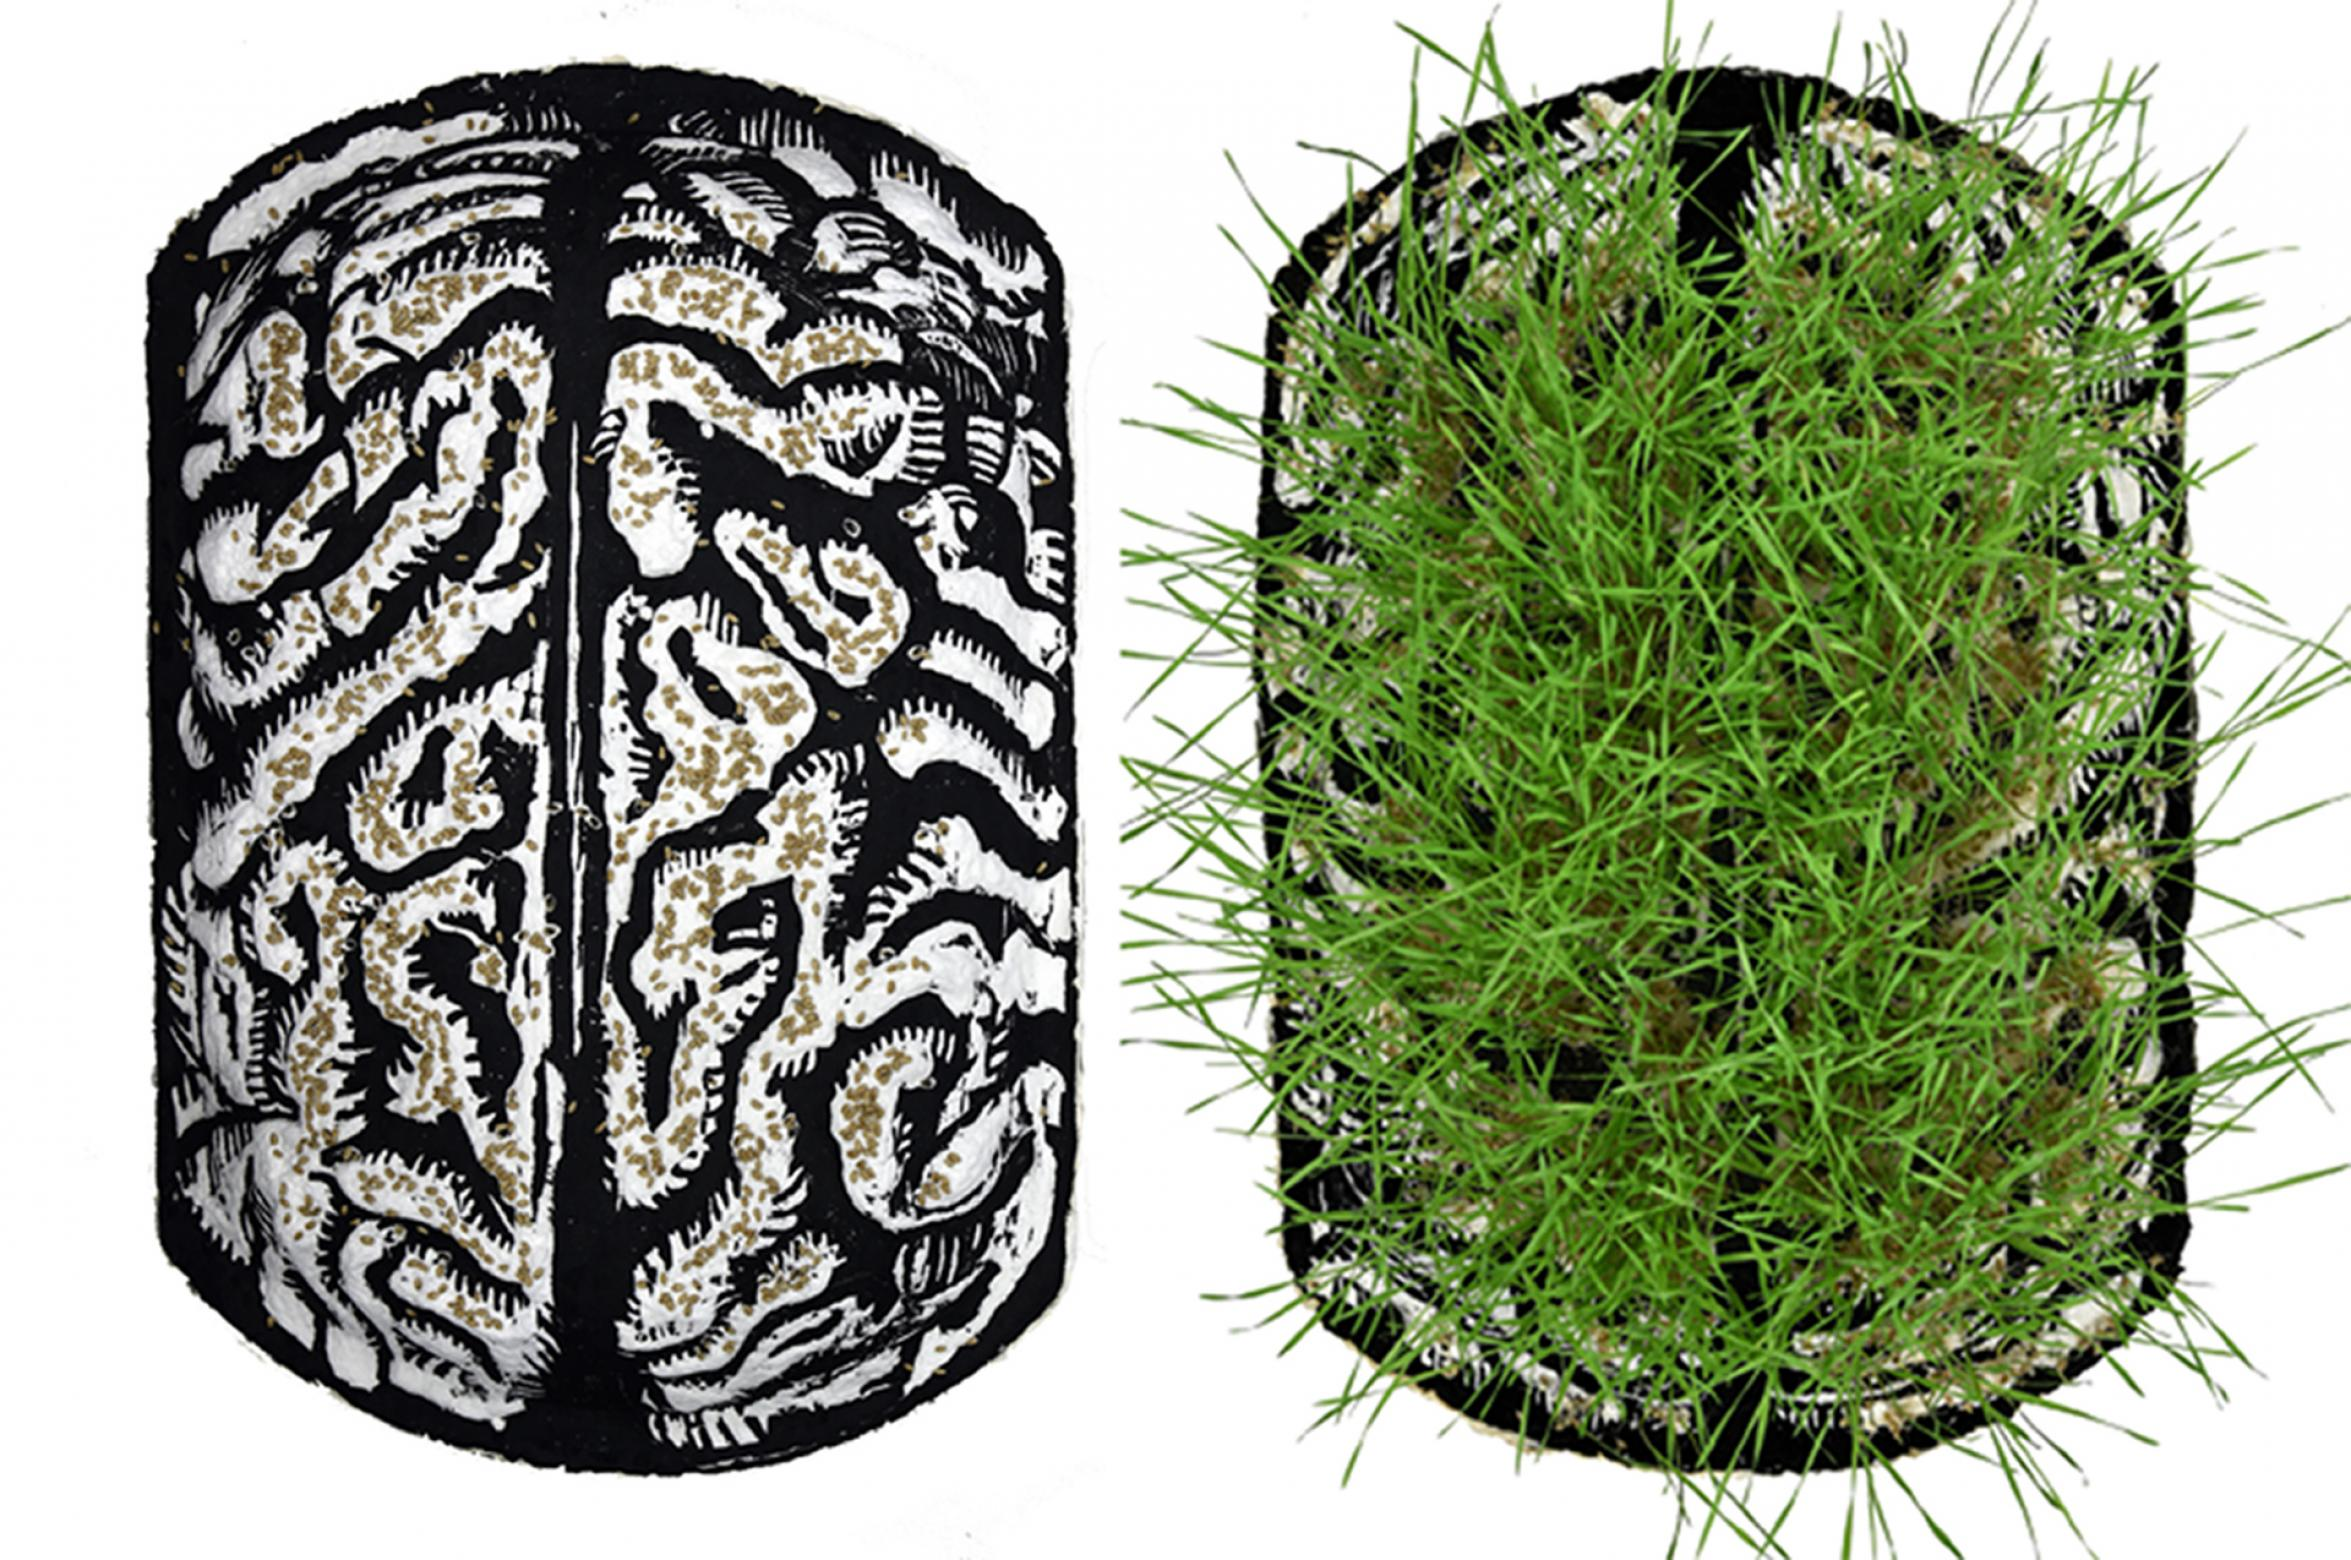 prints of a brain and grass